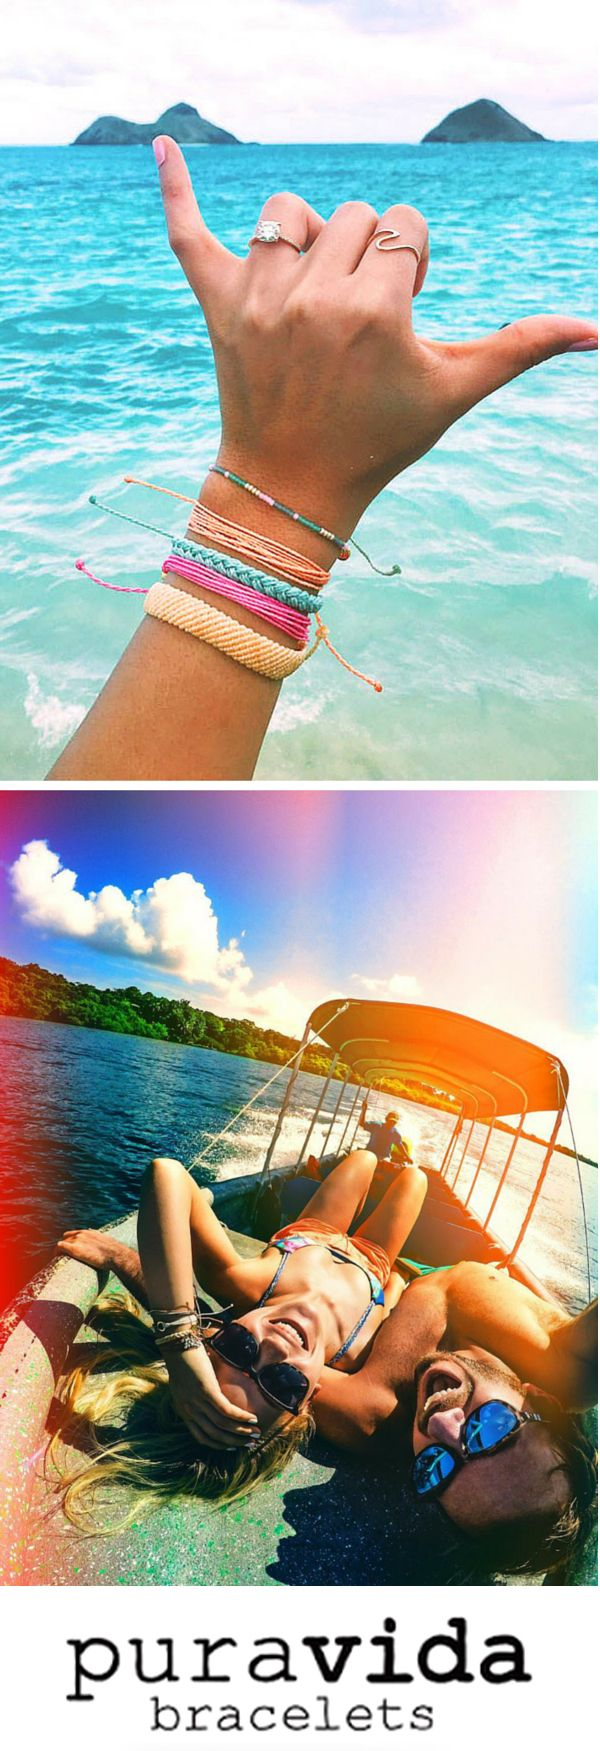 Style your wrist this season with beautiful hand-made bracelets from Costa Rica! Every bracelet purchased helps to provide full-time jobs to local artisans. Use code 'PV20' for 20% off all orders plus free shipping within the U.S. Join the Pura Vida movement!